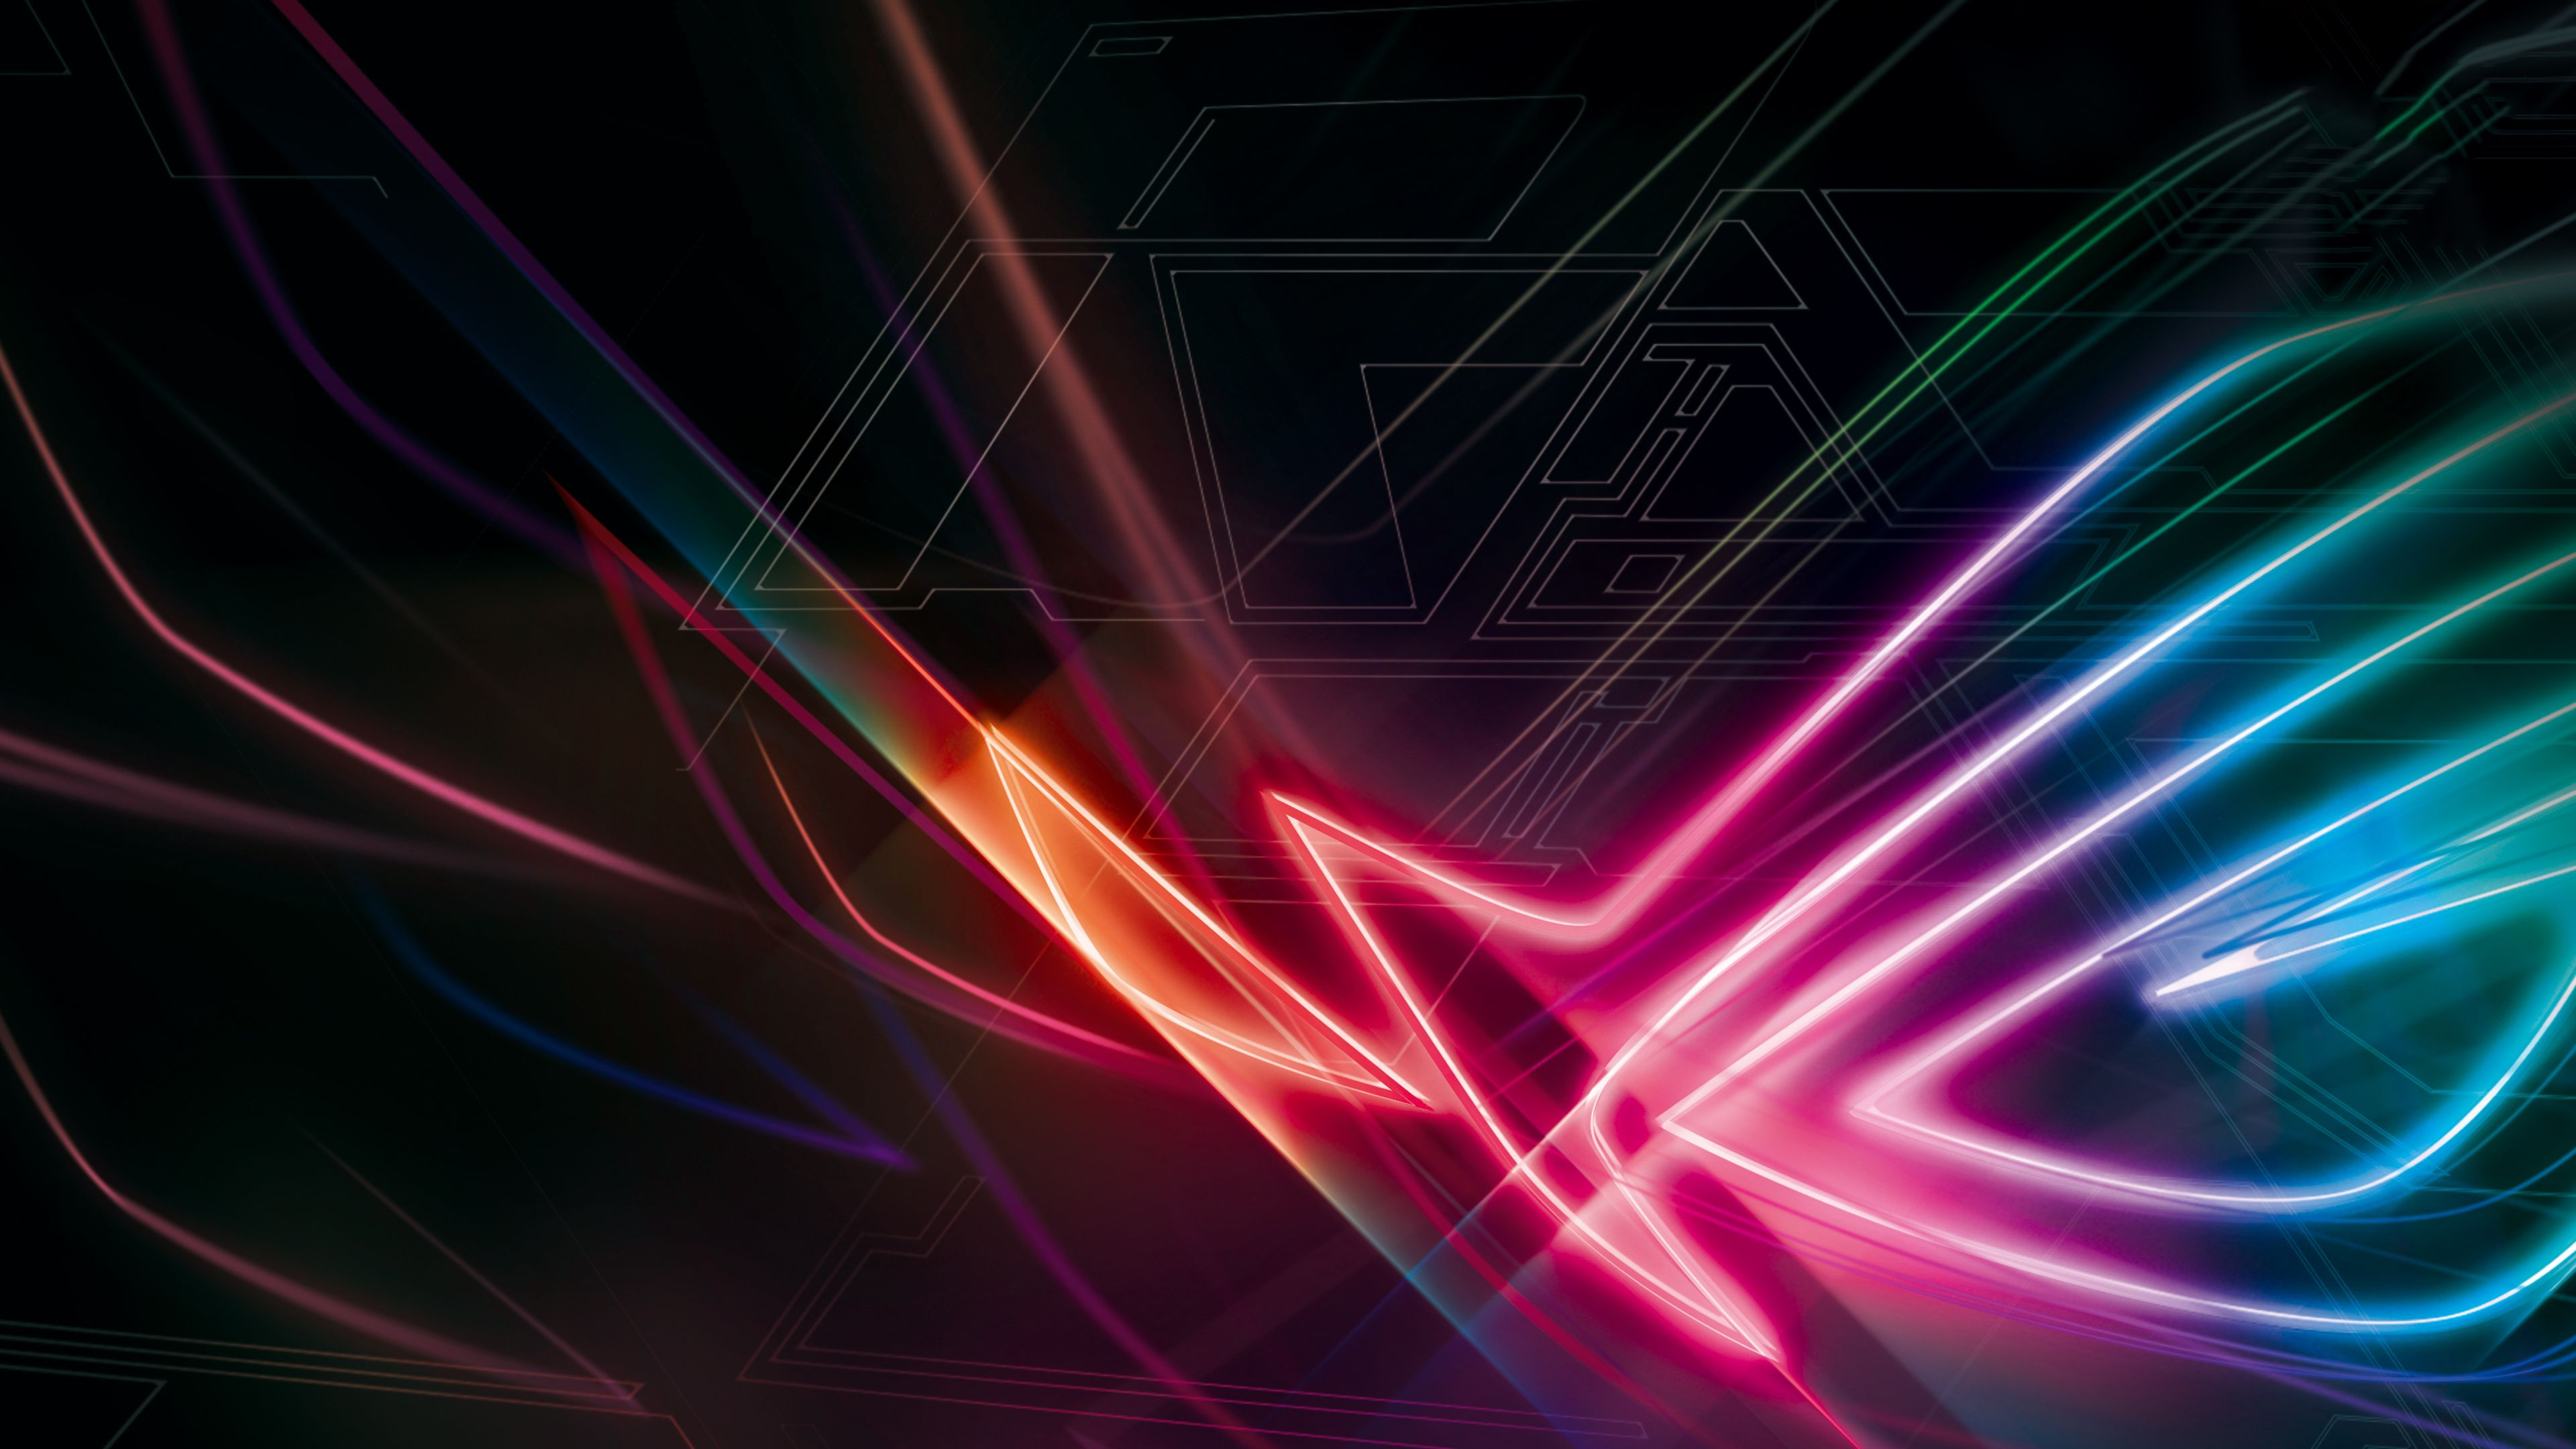 Download Republic Of Games Strix 4k Rog Asus Wallpaper Rgb And Share It With More People Who Need It Di 2020 Gambar